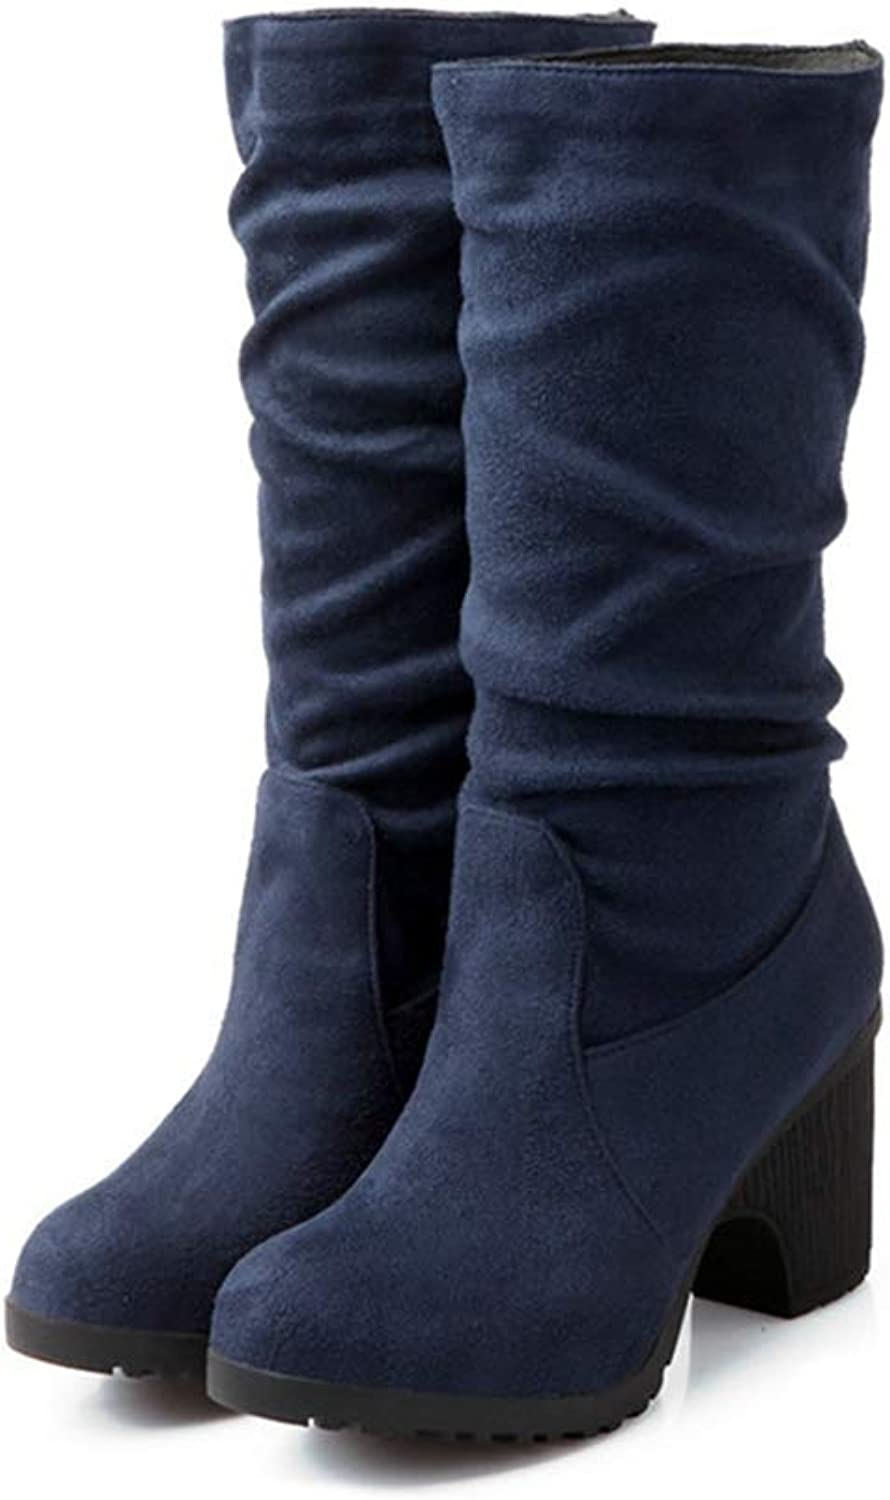 Autumn Winter Flock Ladies Boots Elegant Platform Woman Boots High Heels Classic Mid Calf Boots bluee